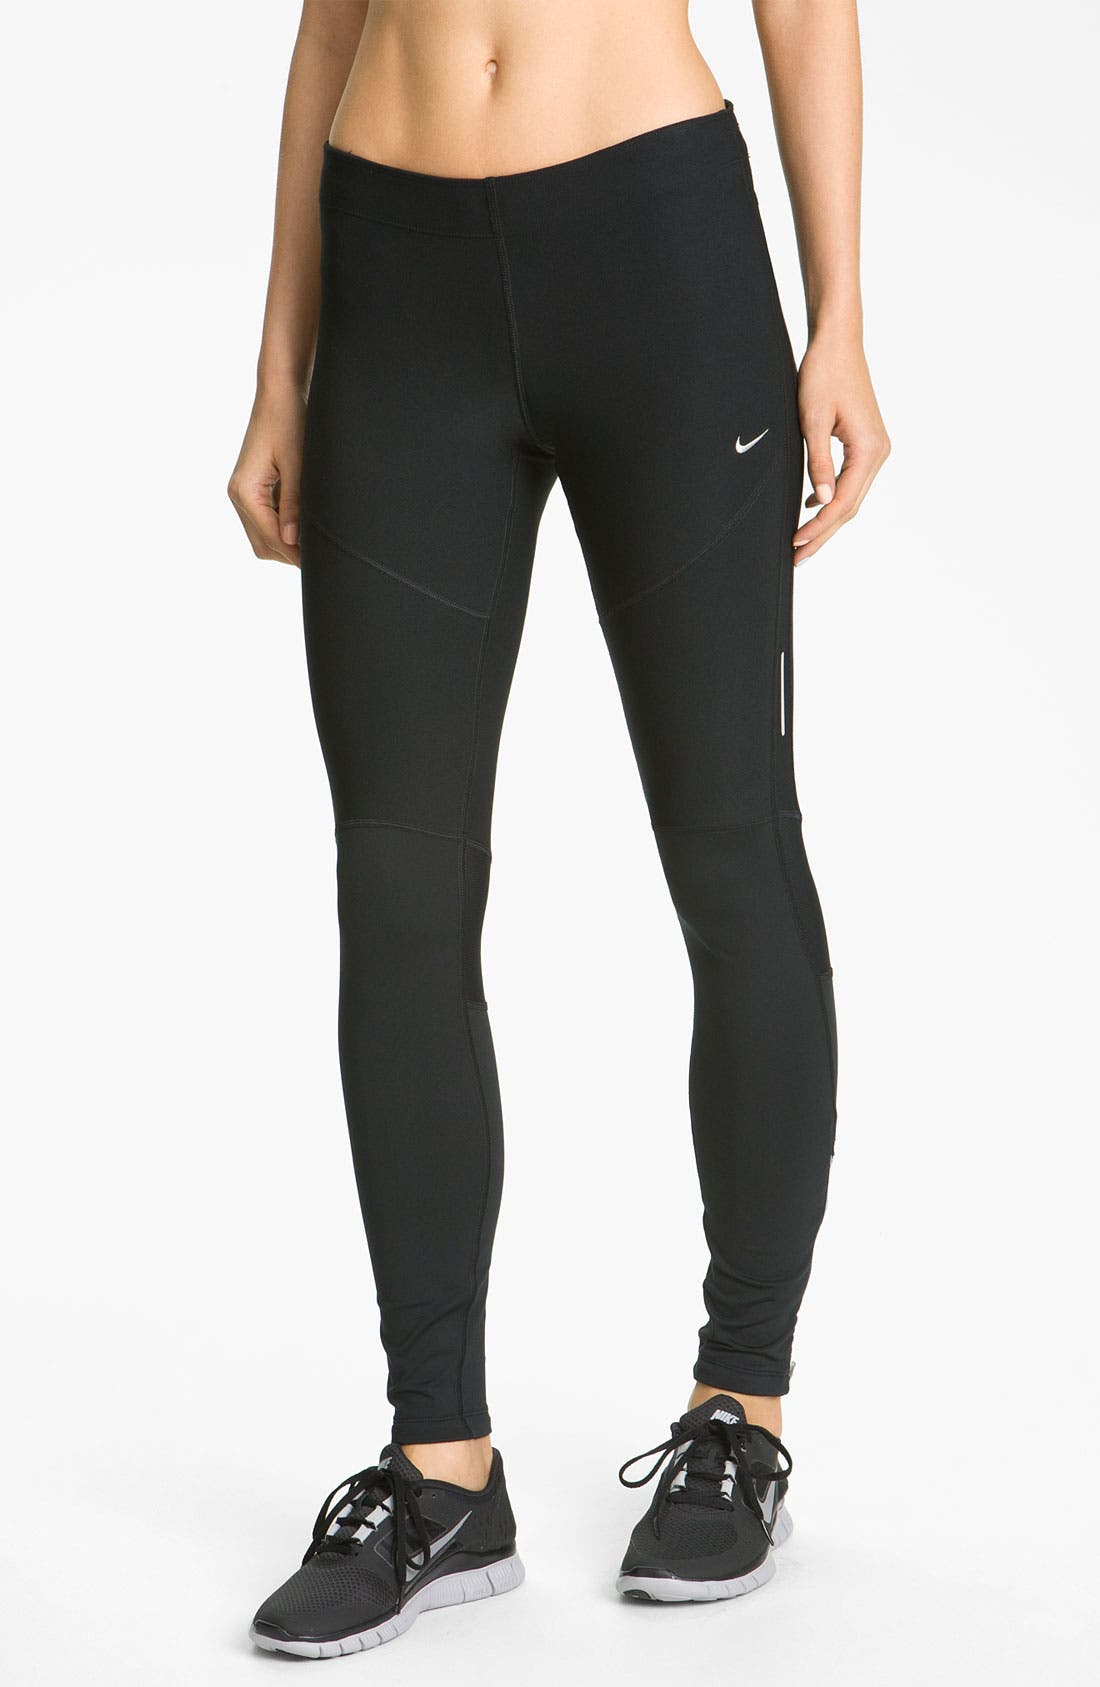 Main Image - Nike 'Tech' Running Tights